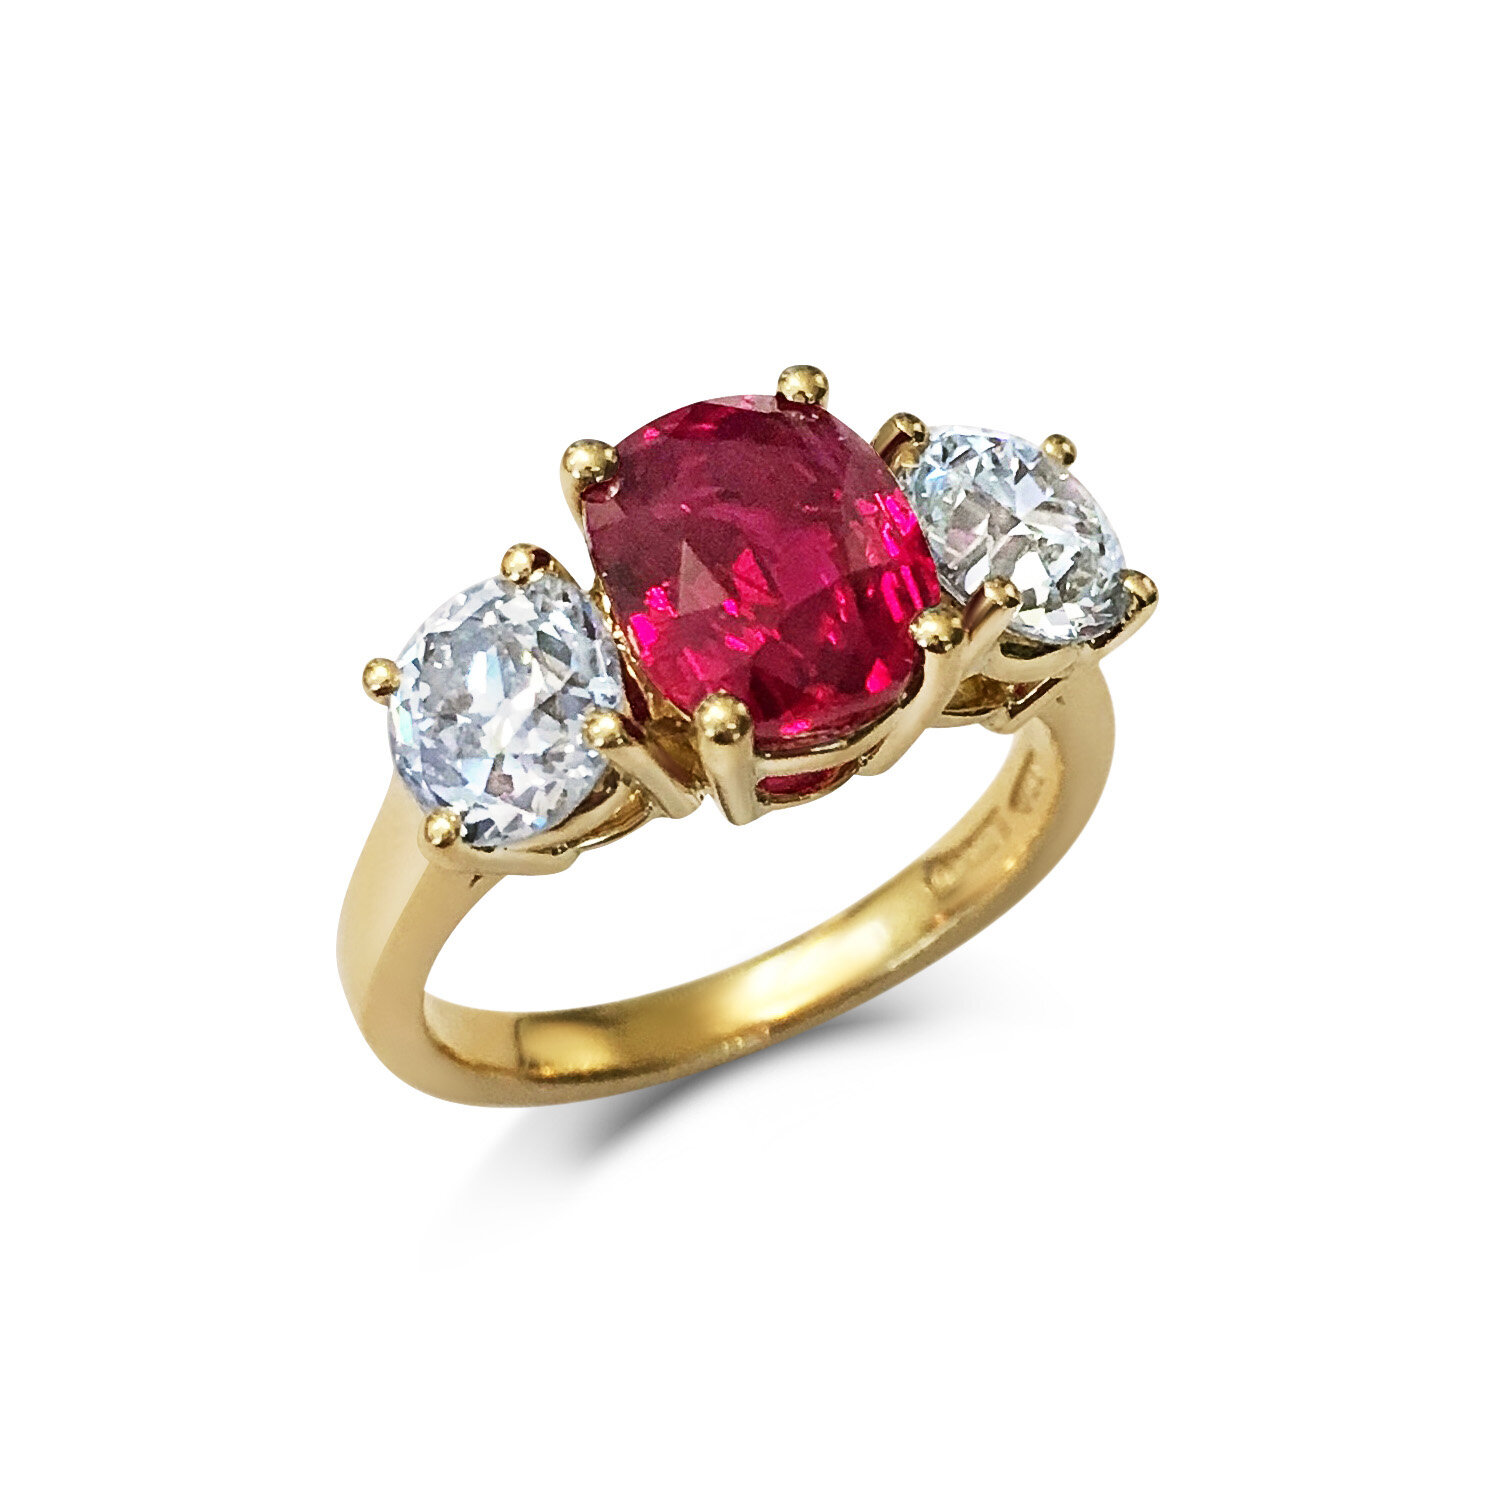 Ruby and Diamond three-stone ring mounted in 18t yellow gold.